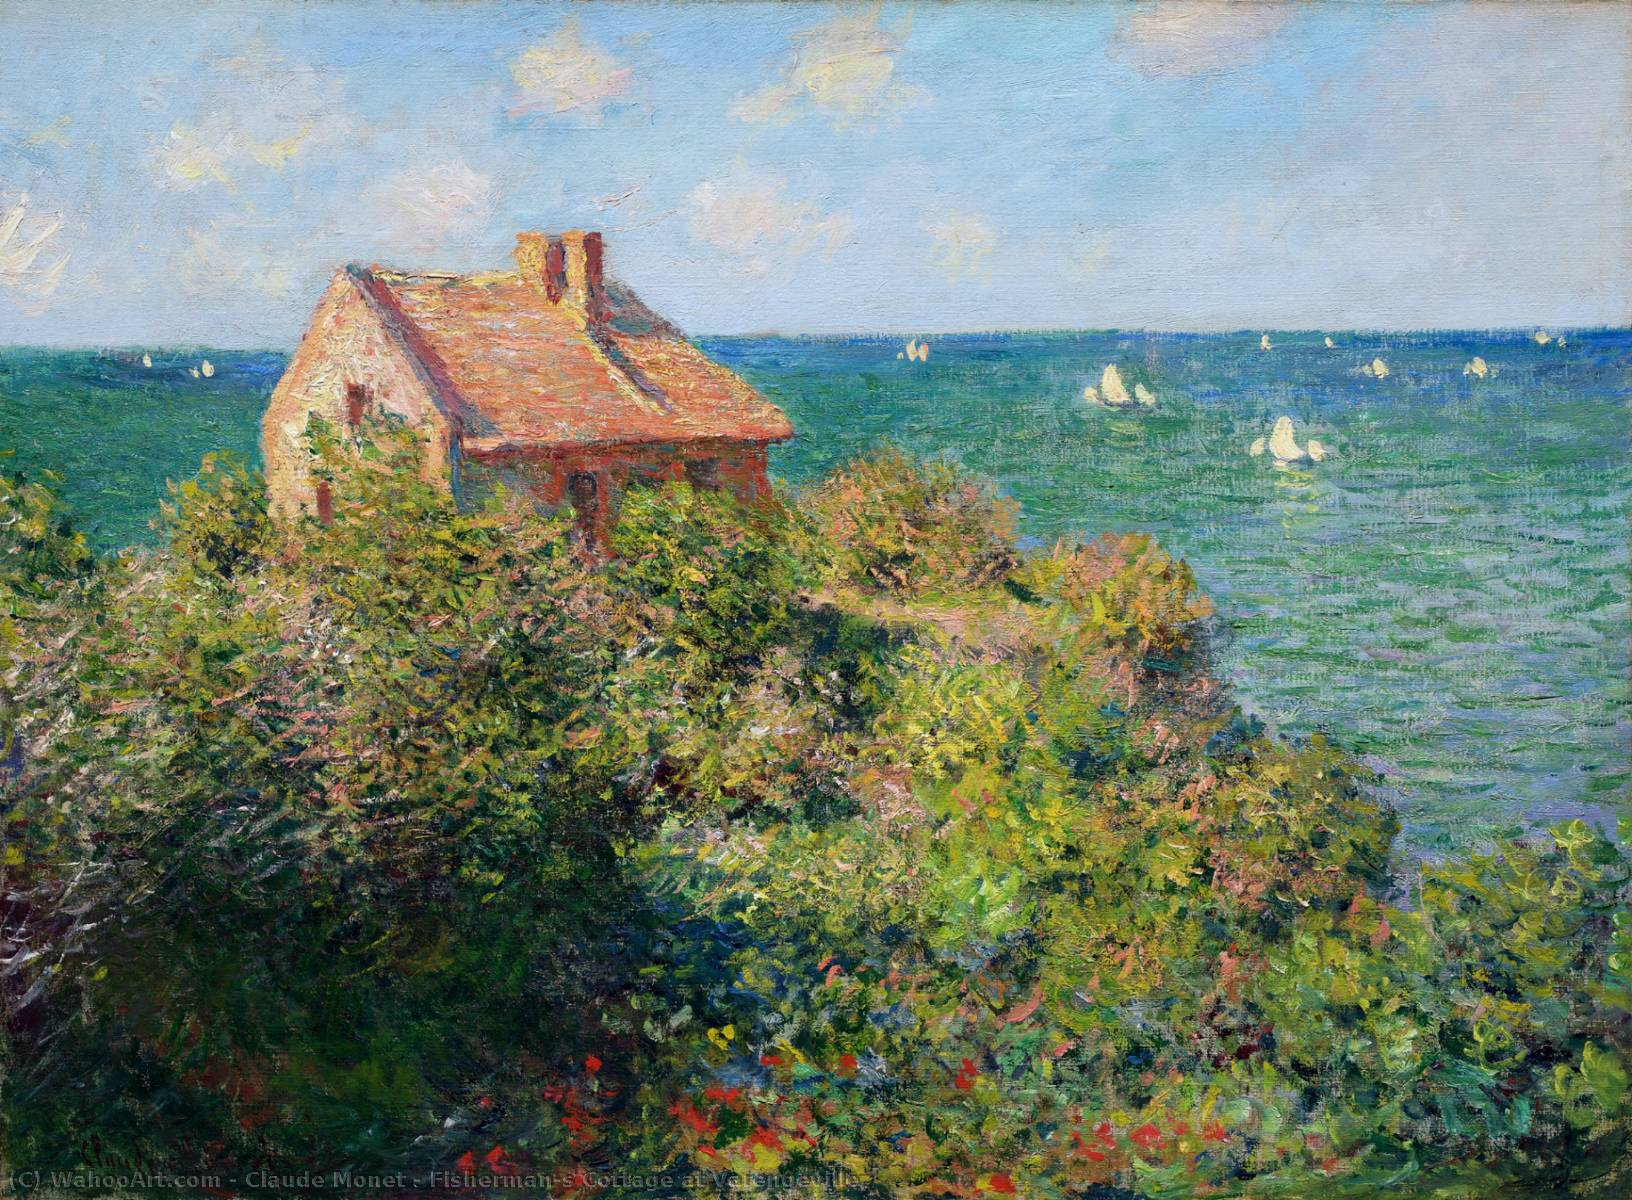 Buy Museum Art Reproductions | Fisherman's Cottage at Varengeville by Claude Monet | Most-Famous-Paintings.com